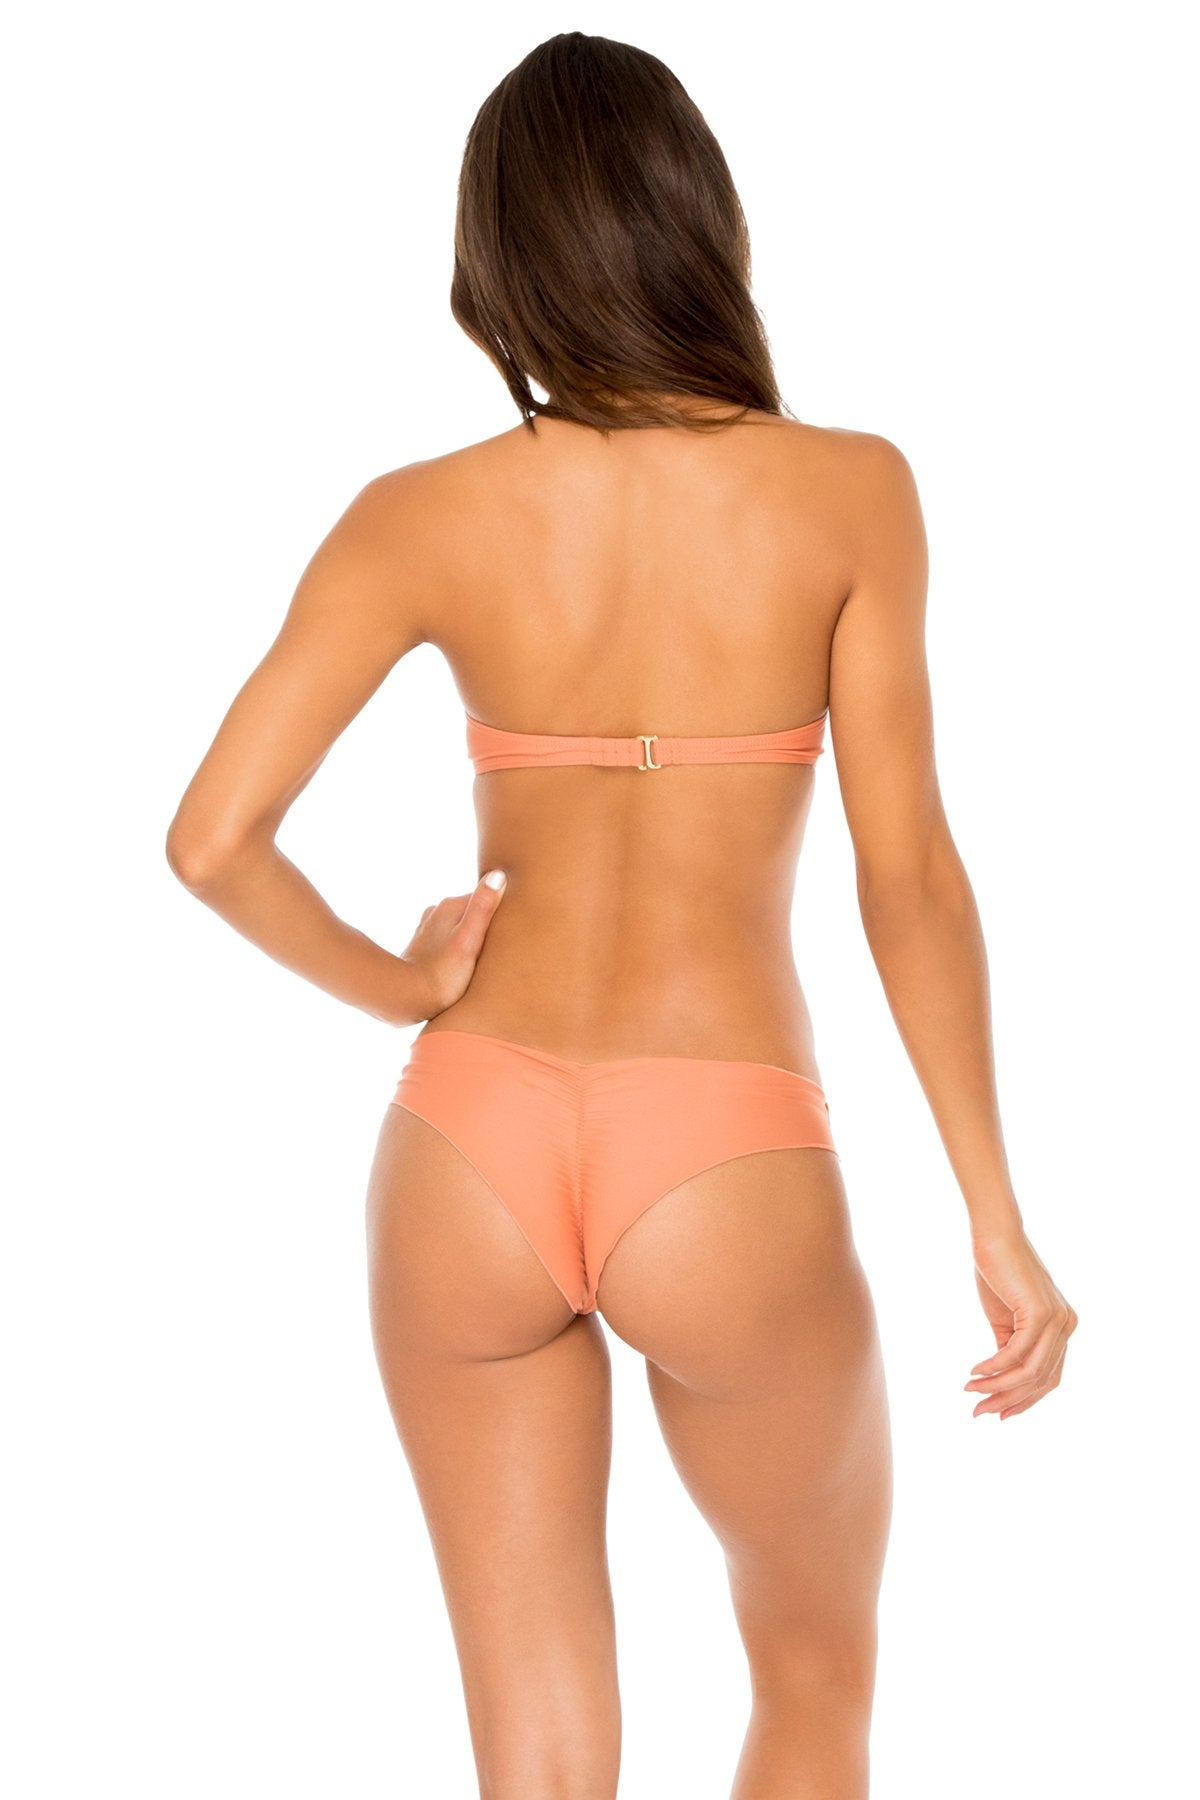 COSITA BUENA - Underwire Push Up Bandeau Top & Seamless Wavey Ruched Back Brazilian Bottom • Azafran